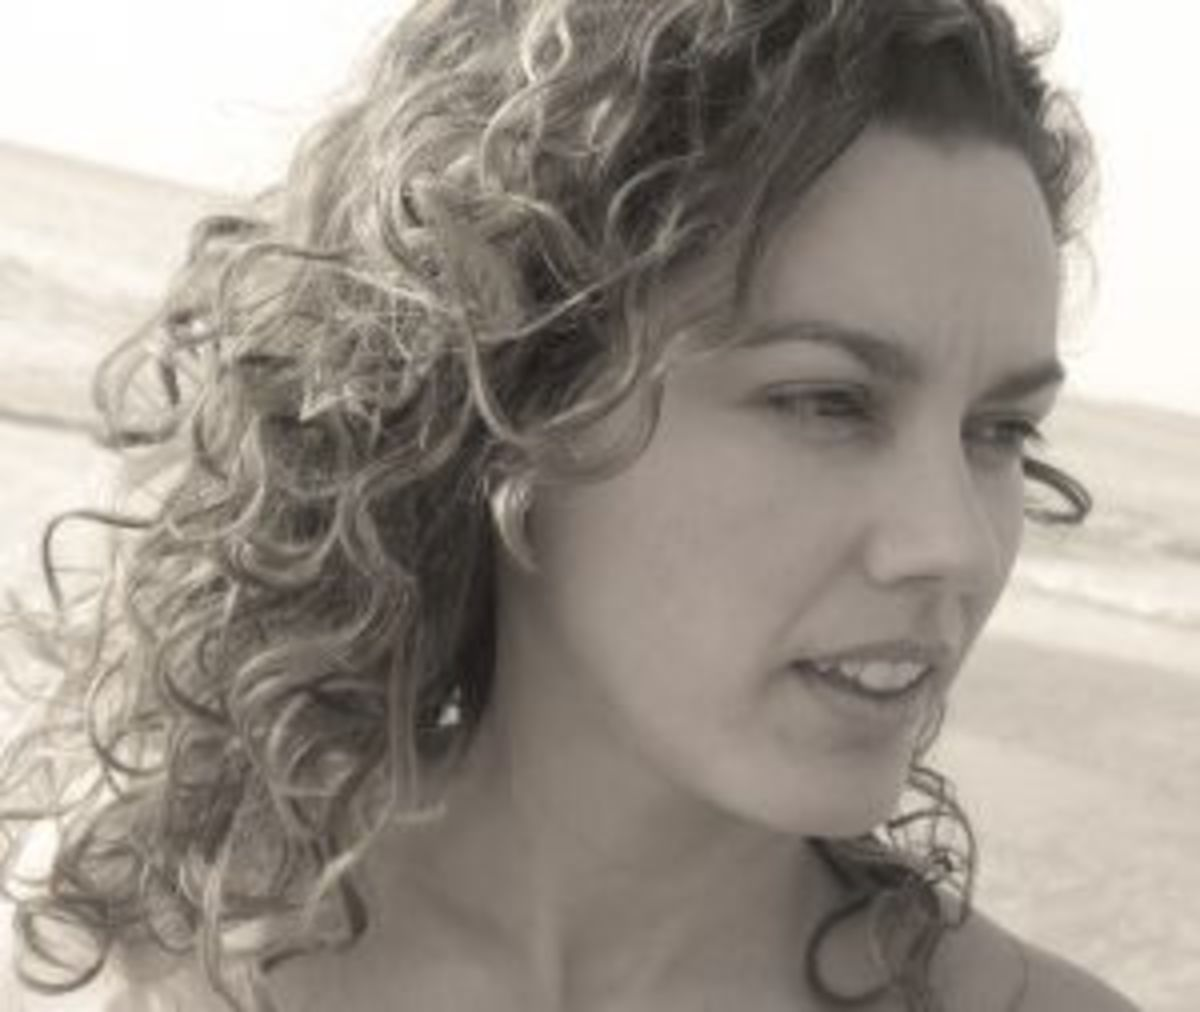 Curly hair is beautiful in it's own way whether long or short.